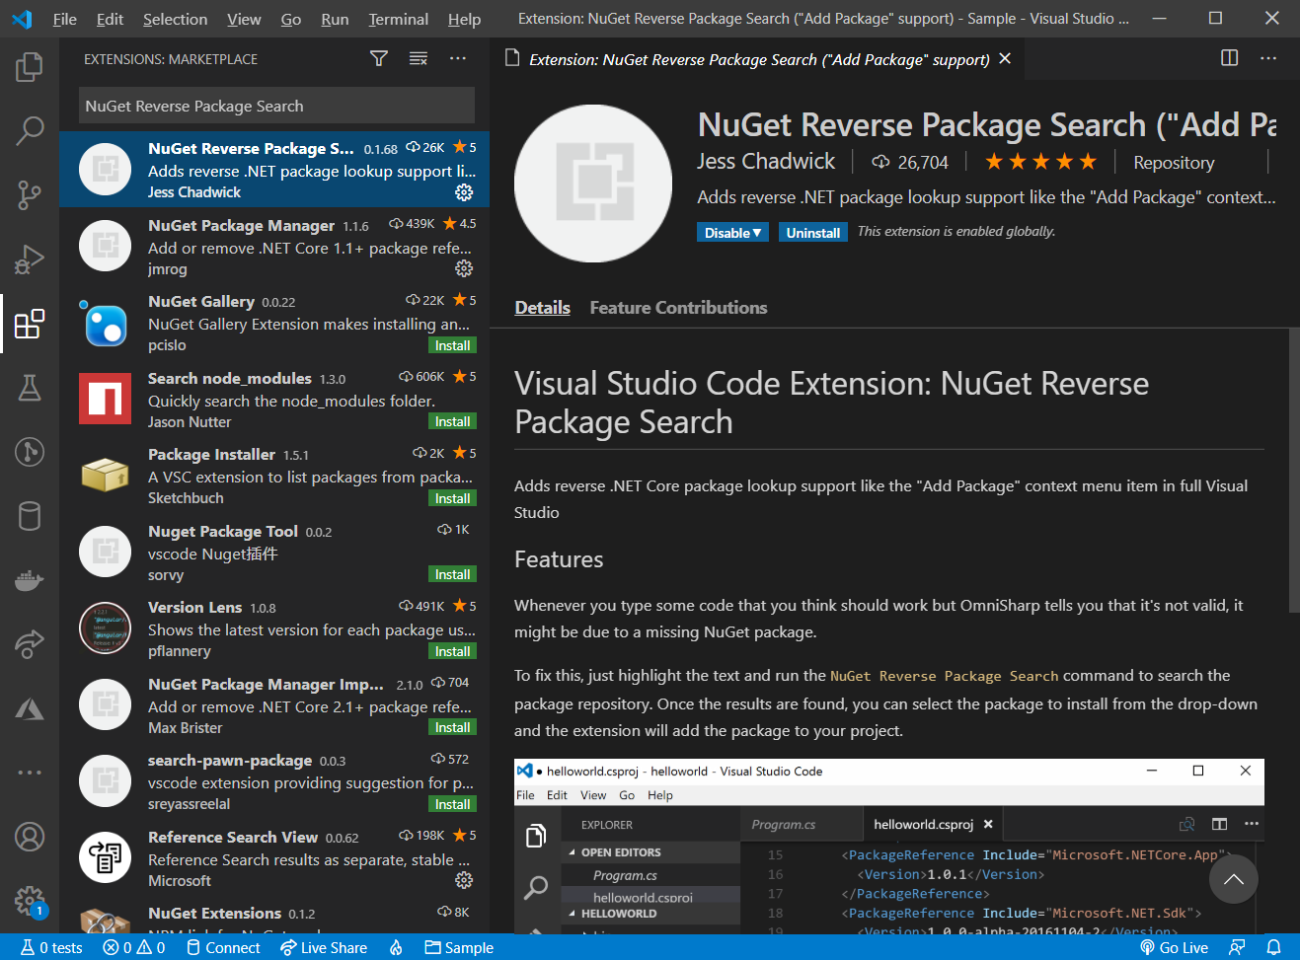 NuGet Reverse Package Search